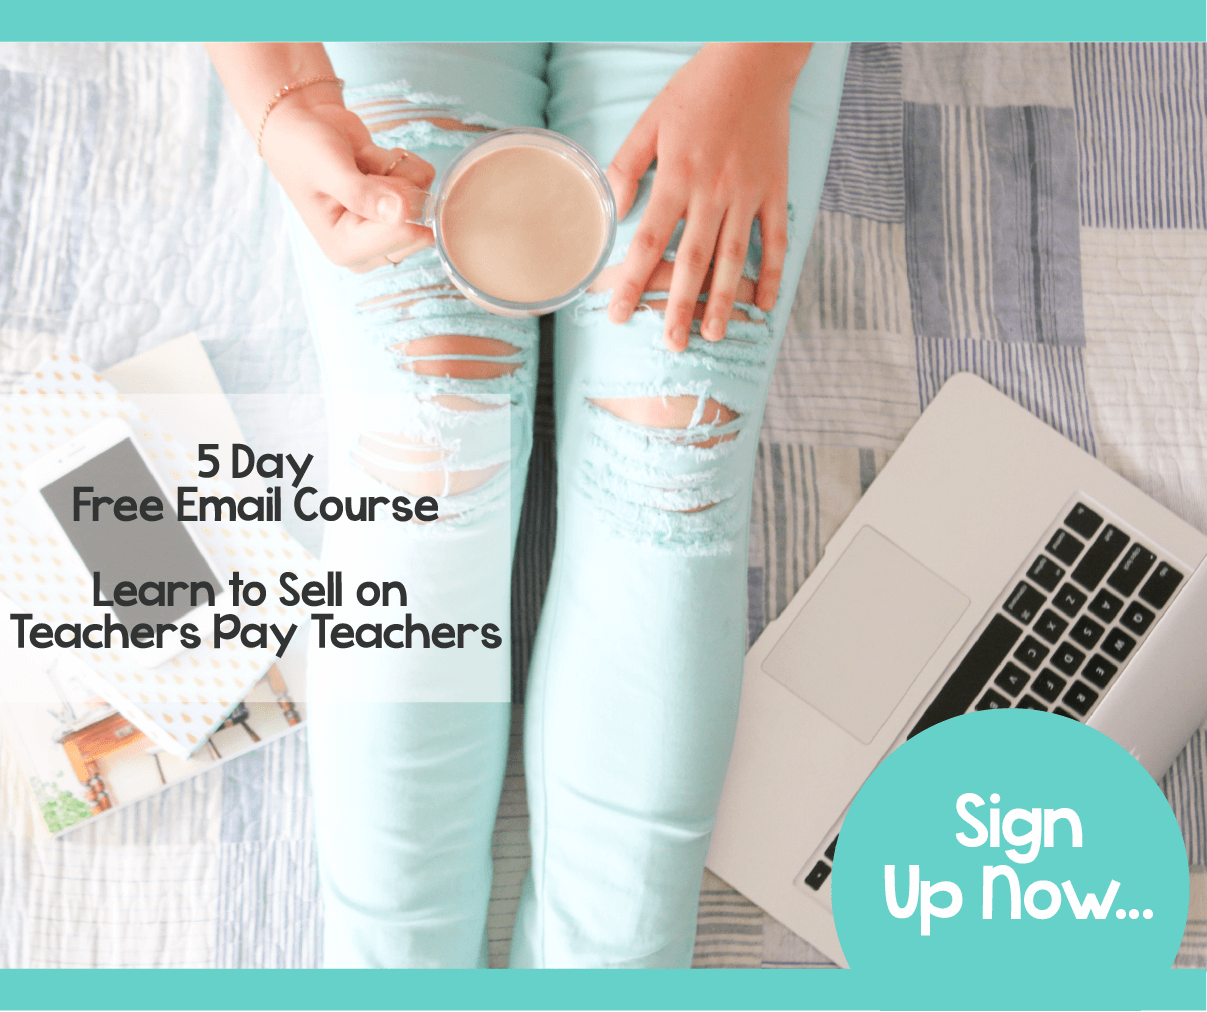 A Free 5 Day Email Course about Learning to Sell on Teachers Pay Teachers